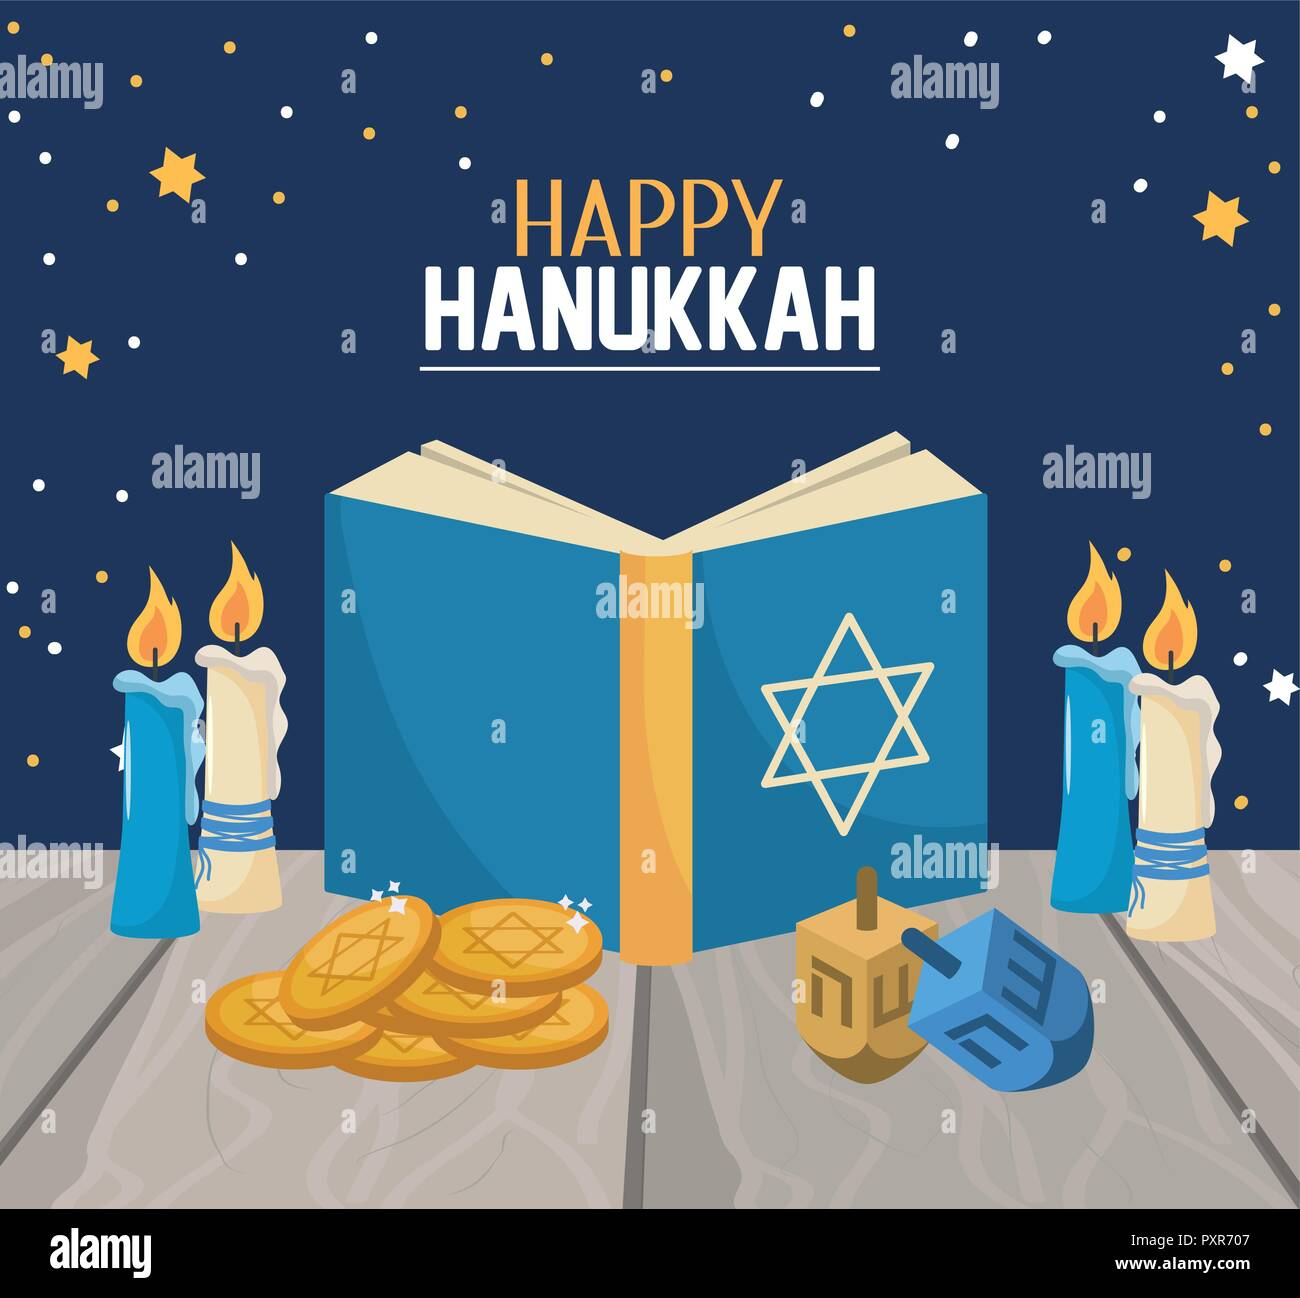 hanukkah book with candles and spin decoration - Stock Image